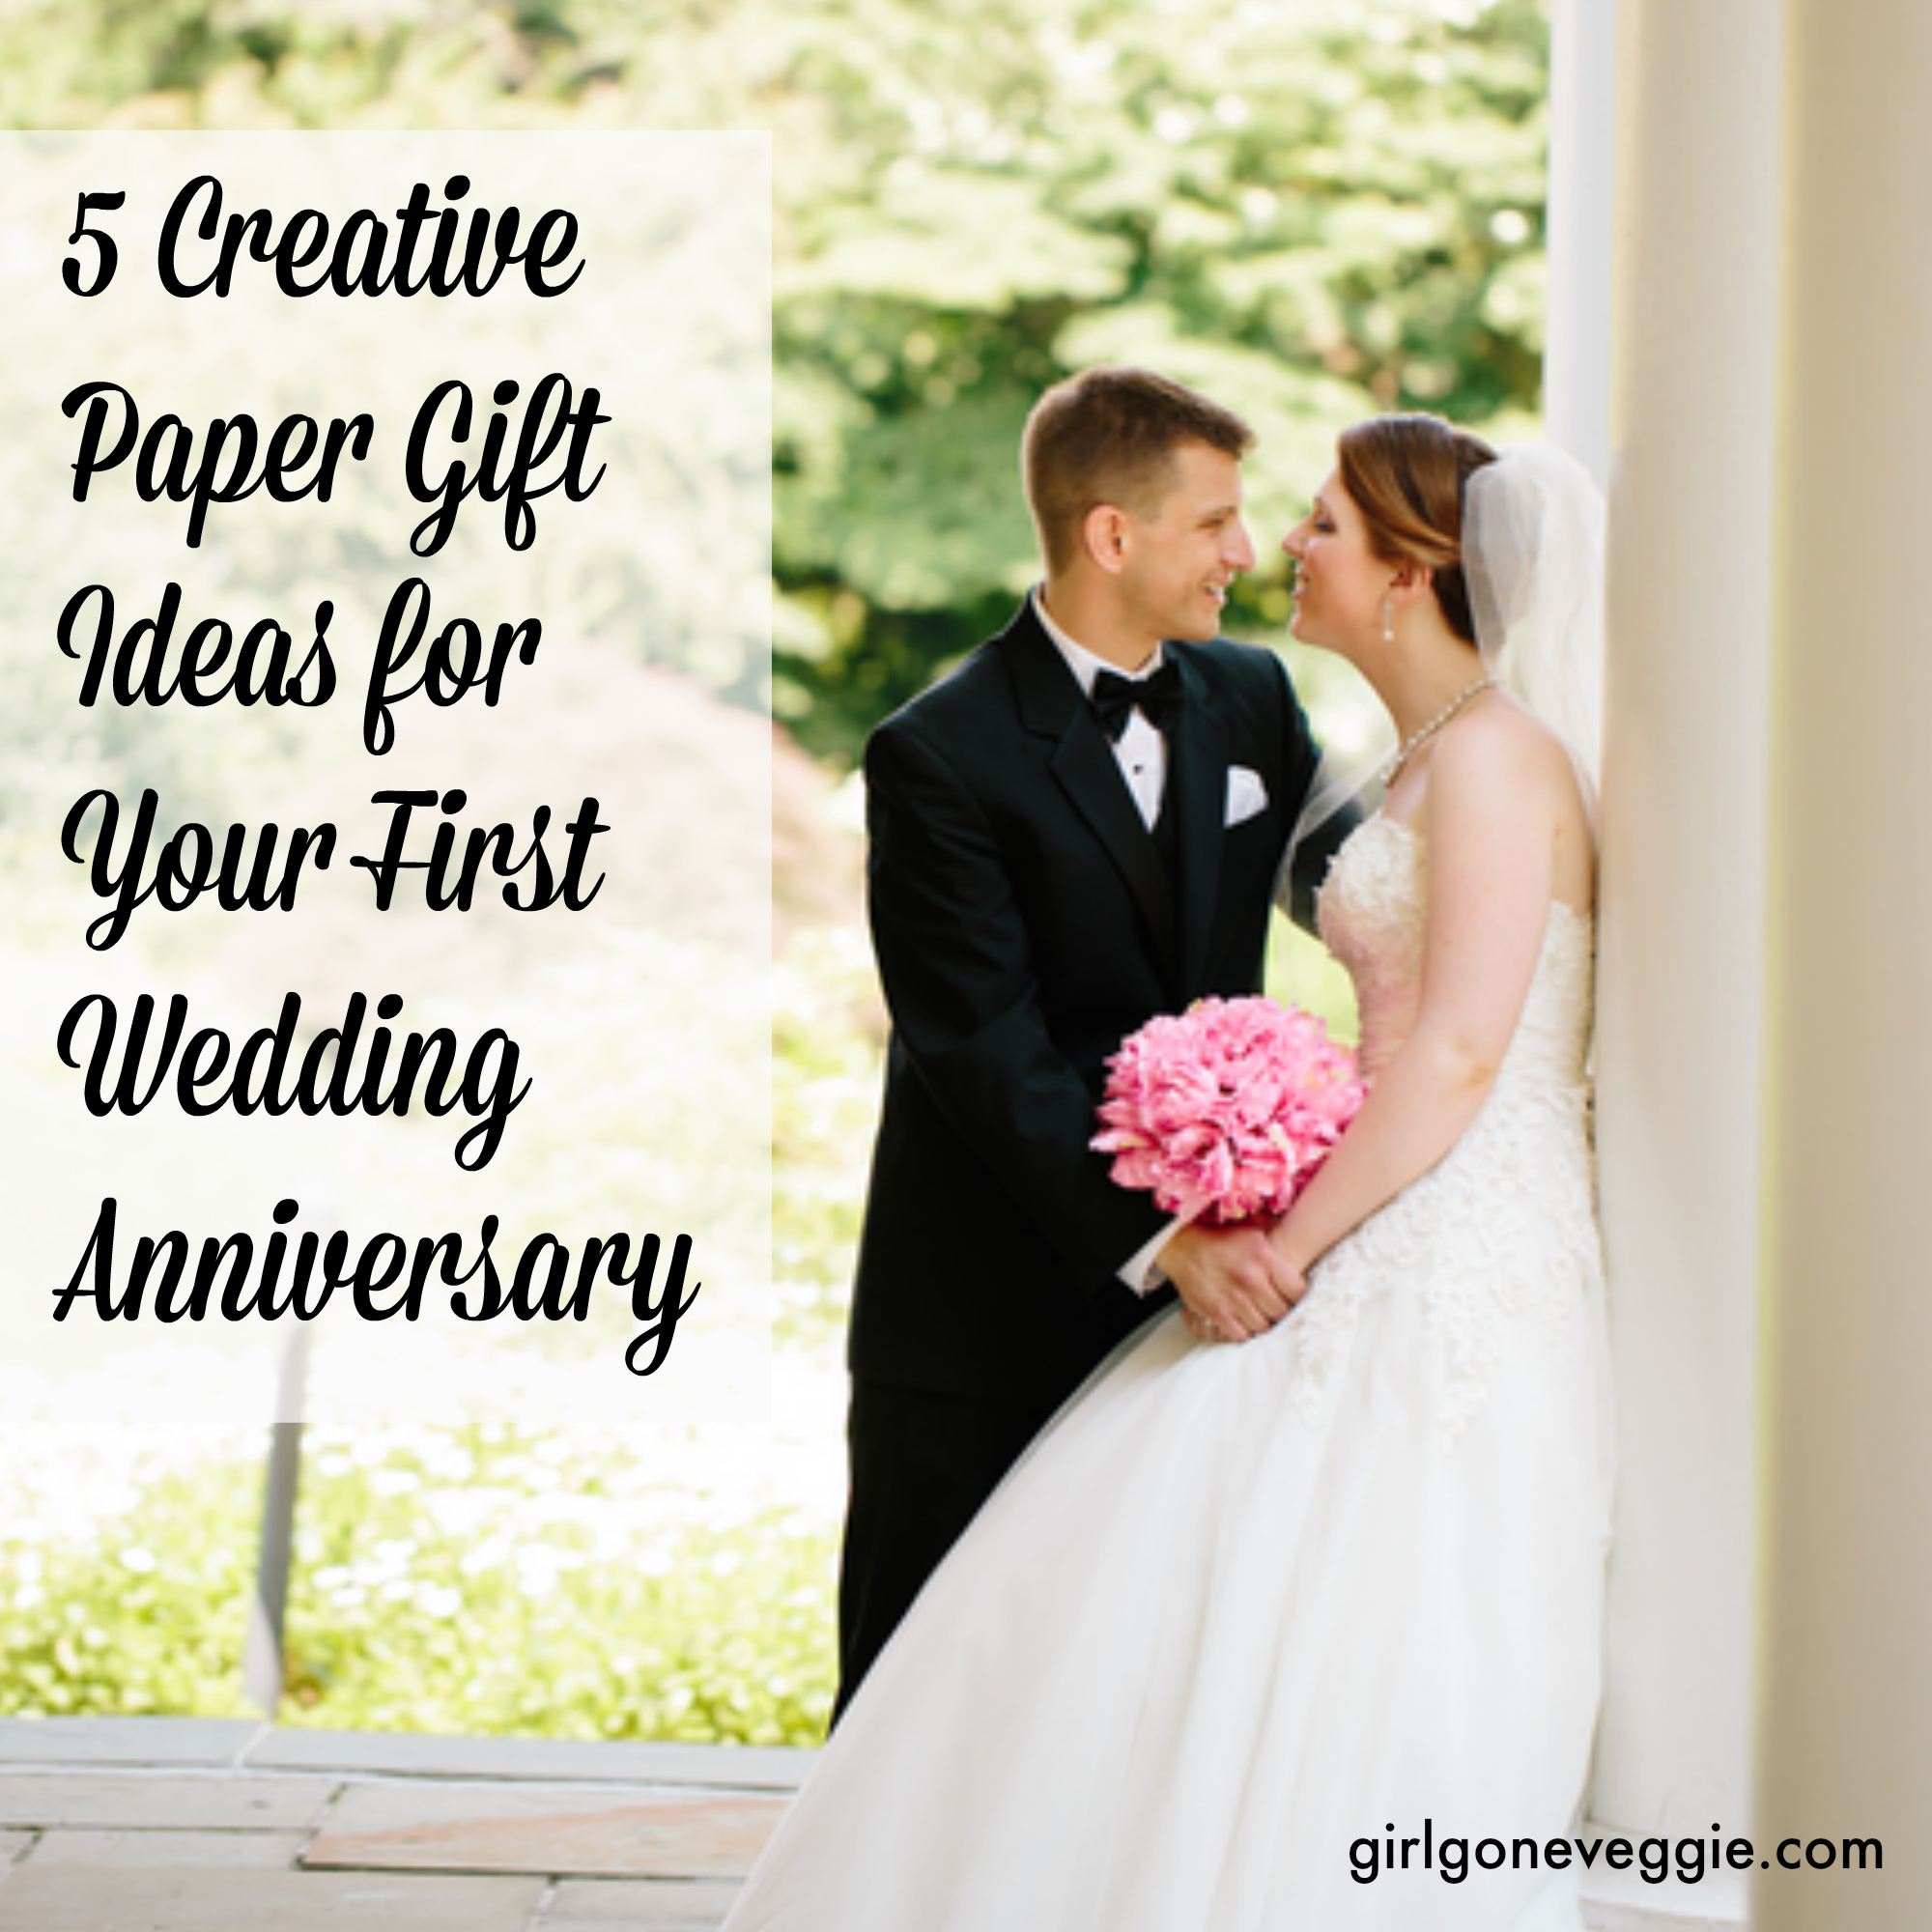 First Wedding Anniversary Gift Ideas For Couple : Wedding Anniversary Gifts: Wedding Anniversary Gift Ideas First Year